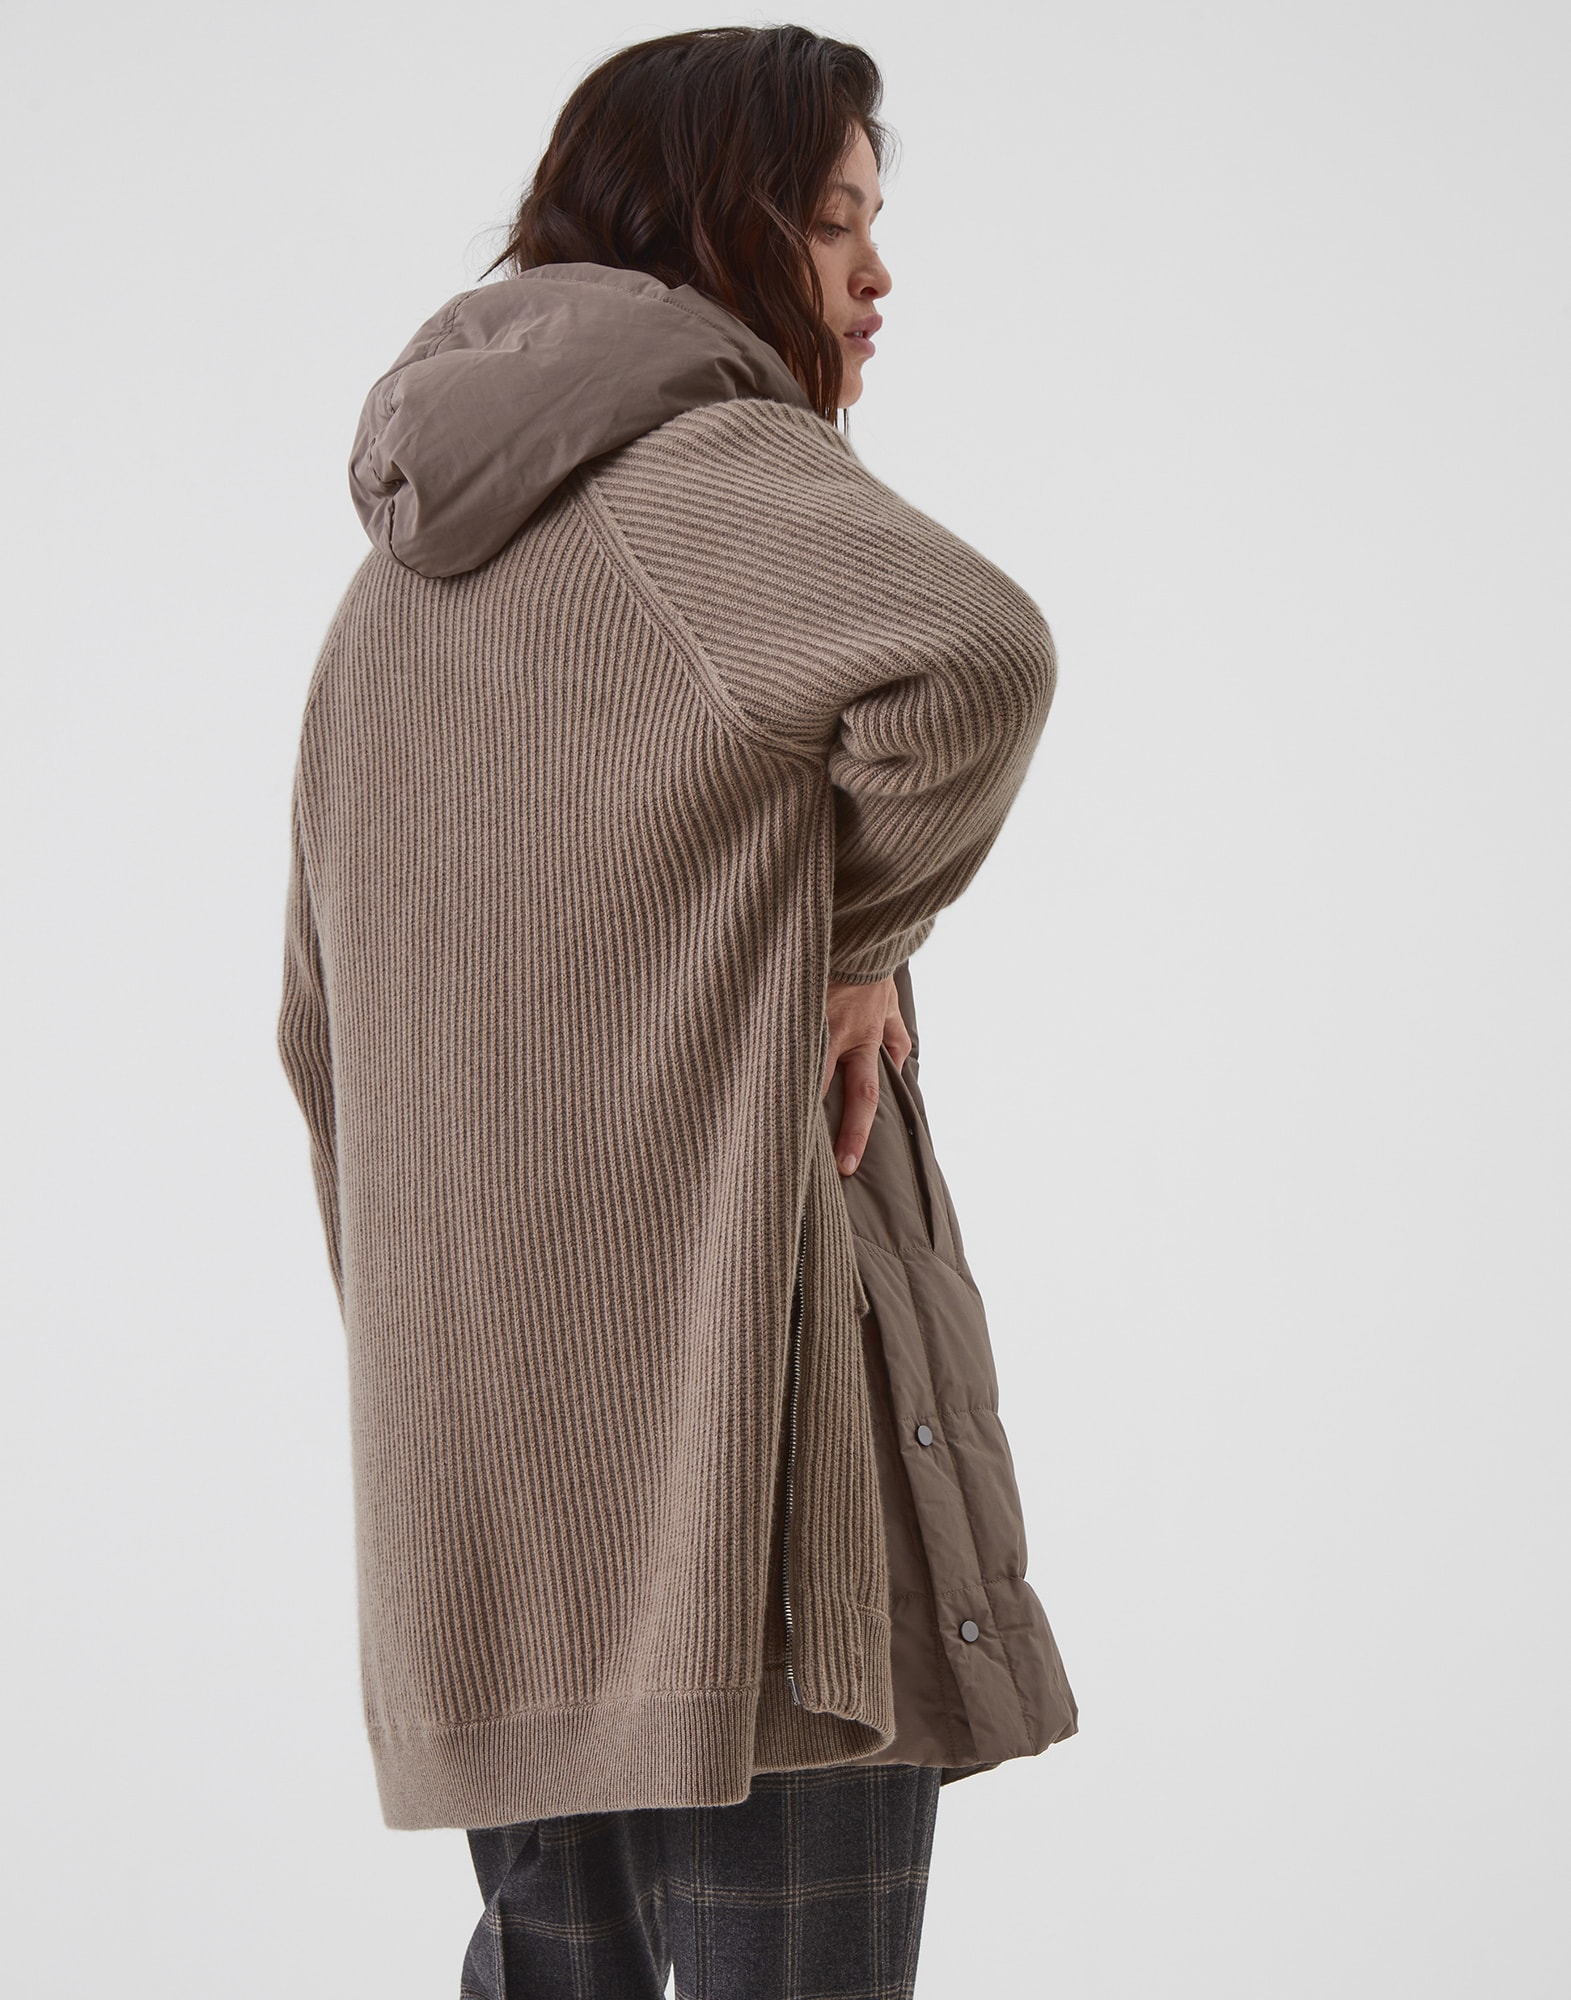 Knit Outerwear Brown Woman 1 - Brunello Cucinelli